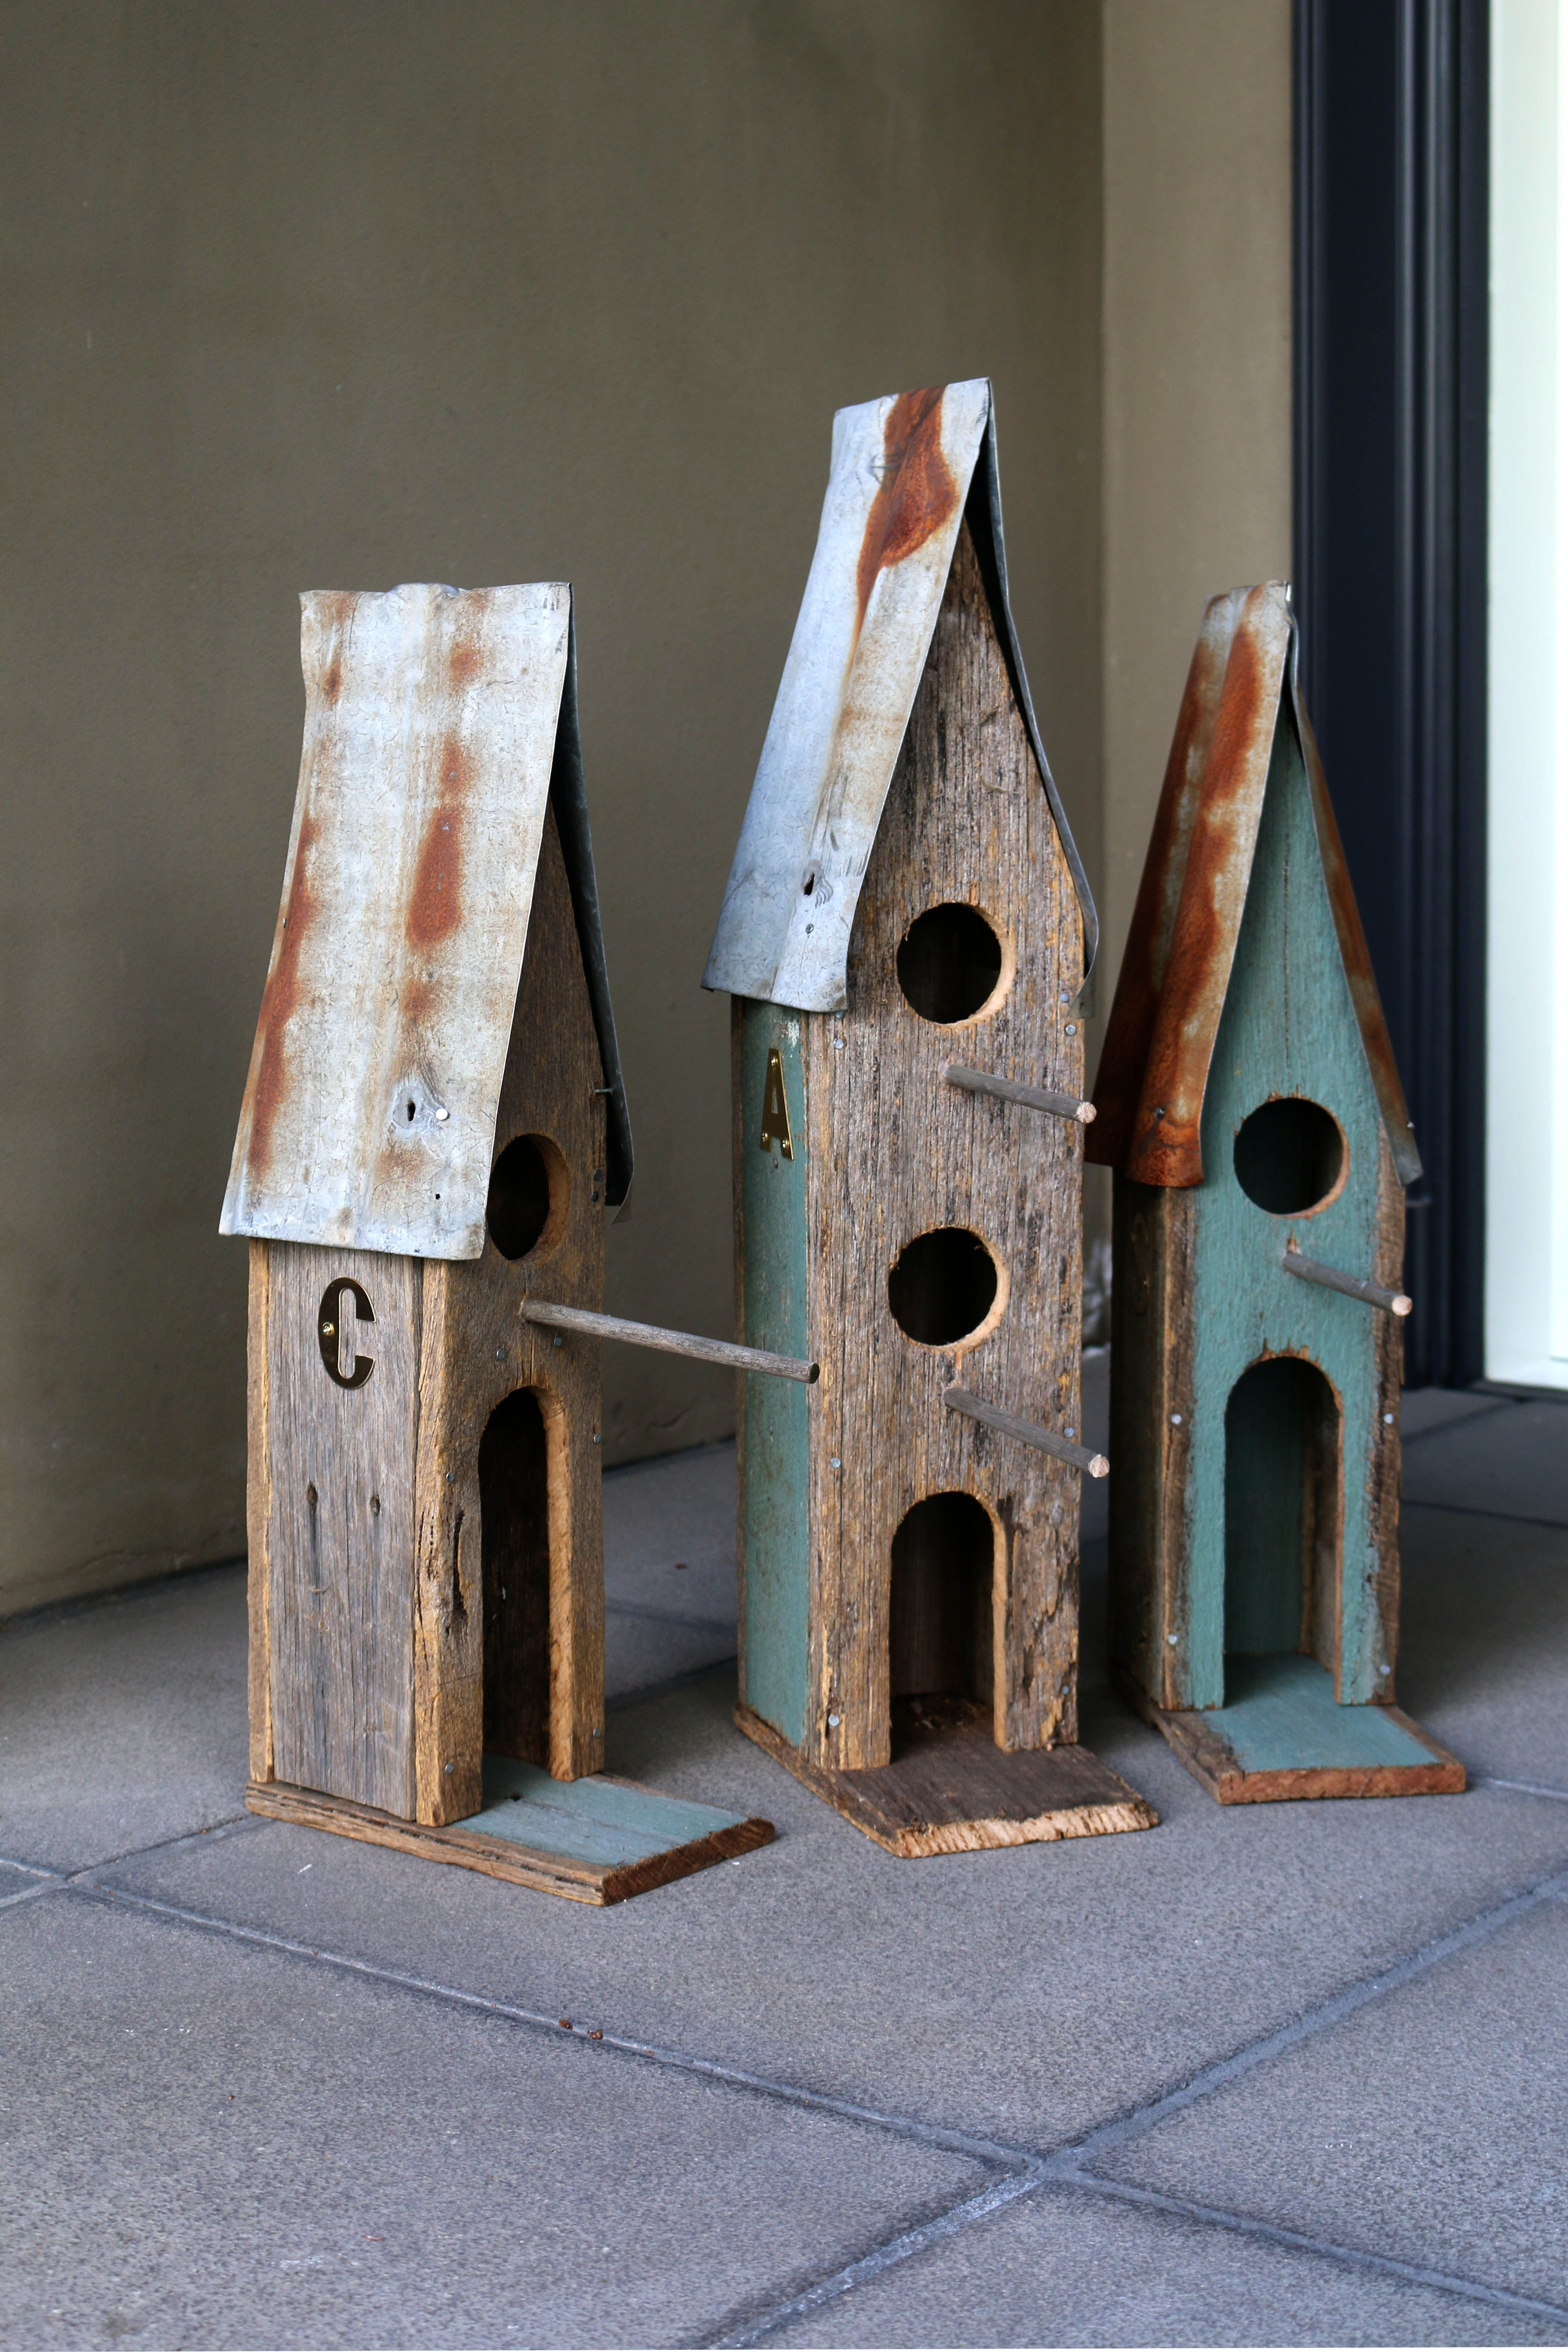 Handmade Birdhouses By Boodle Concepts In Melbourne These Bespoke Gifts Are Made In St Kilda From Rustic Reclai Handmade Birdhouses Bird Houses Iron Wall Art